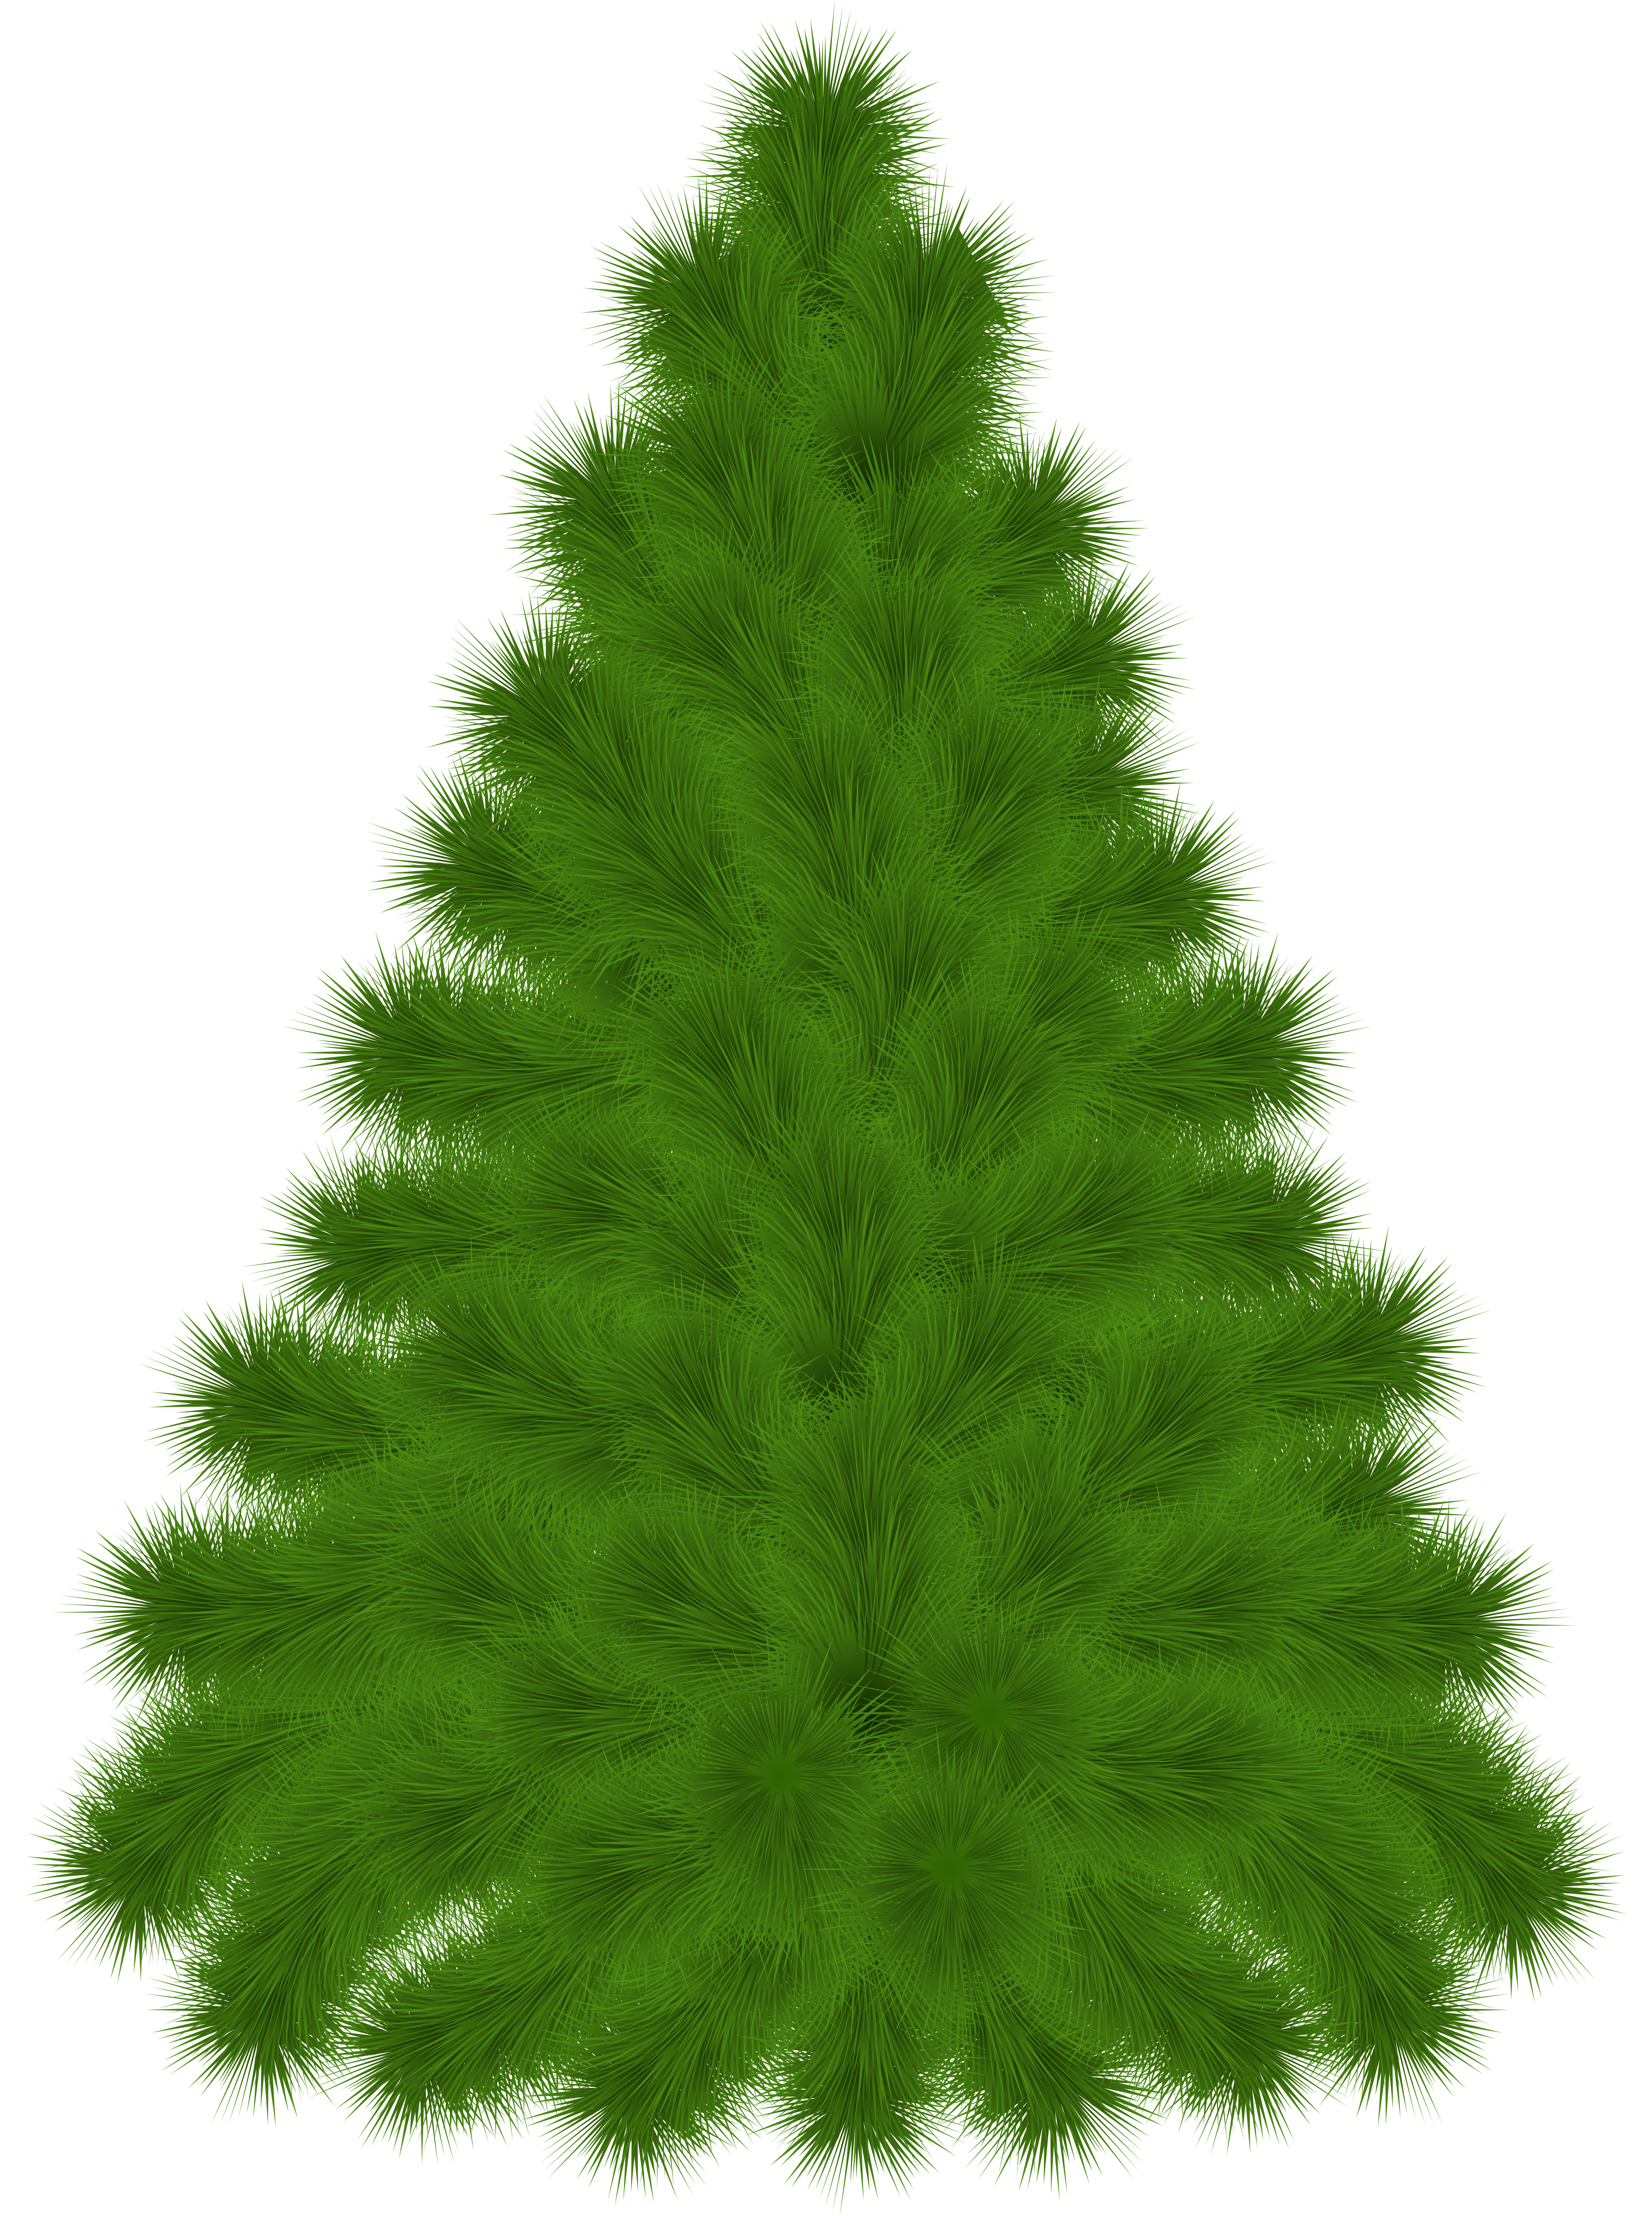 Pine forest silhouette at. Storytime clipart christmas